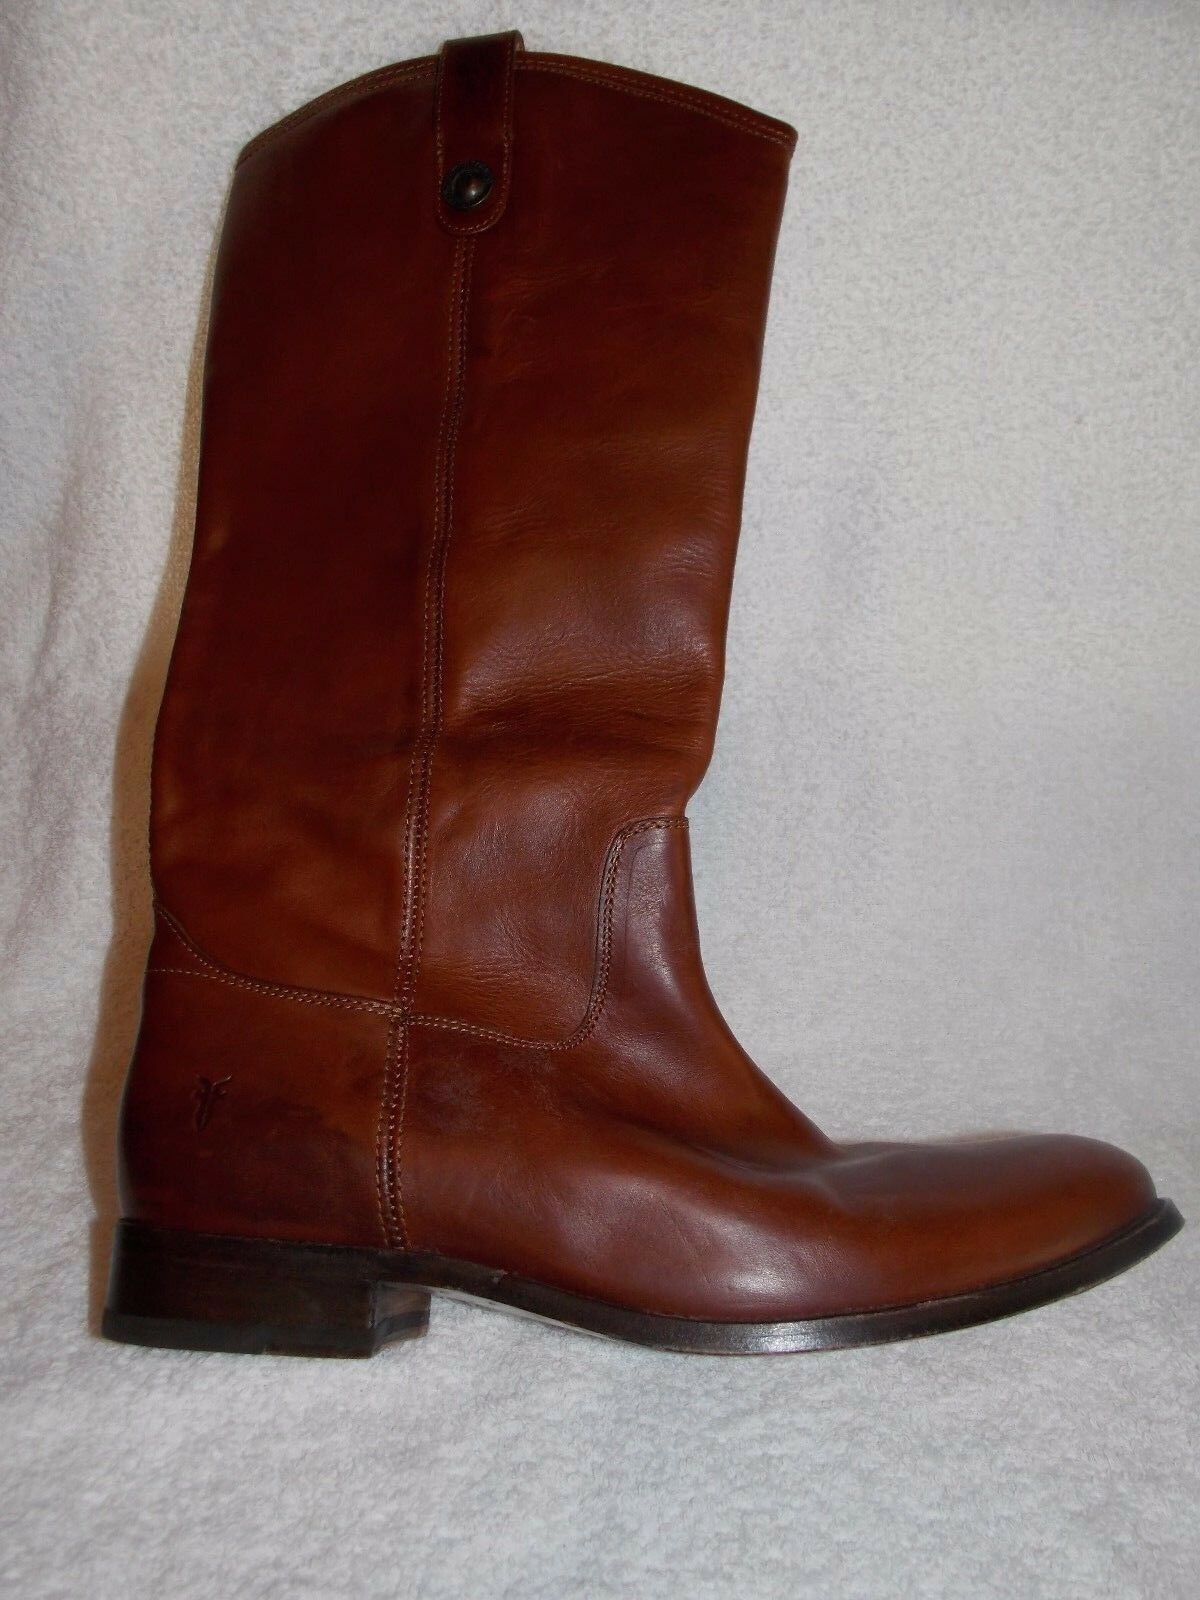 Frye MELISSA BUTTON Leather Knee High Riding  Boots 11B Women Used Boots